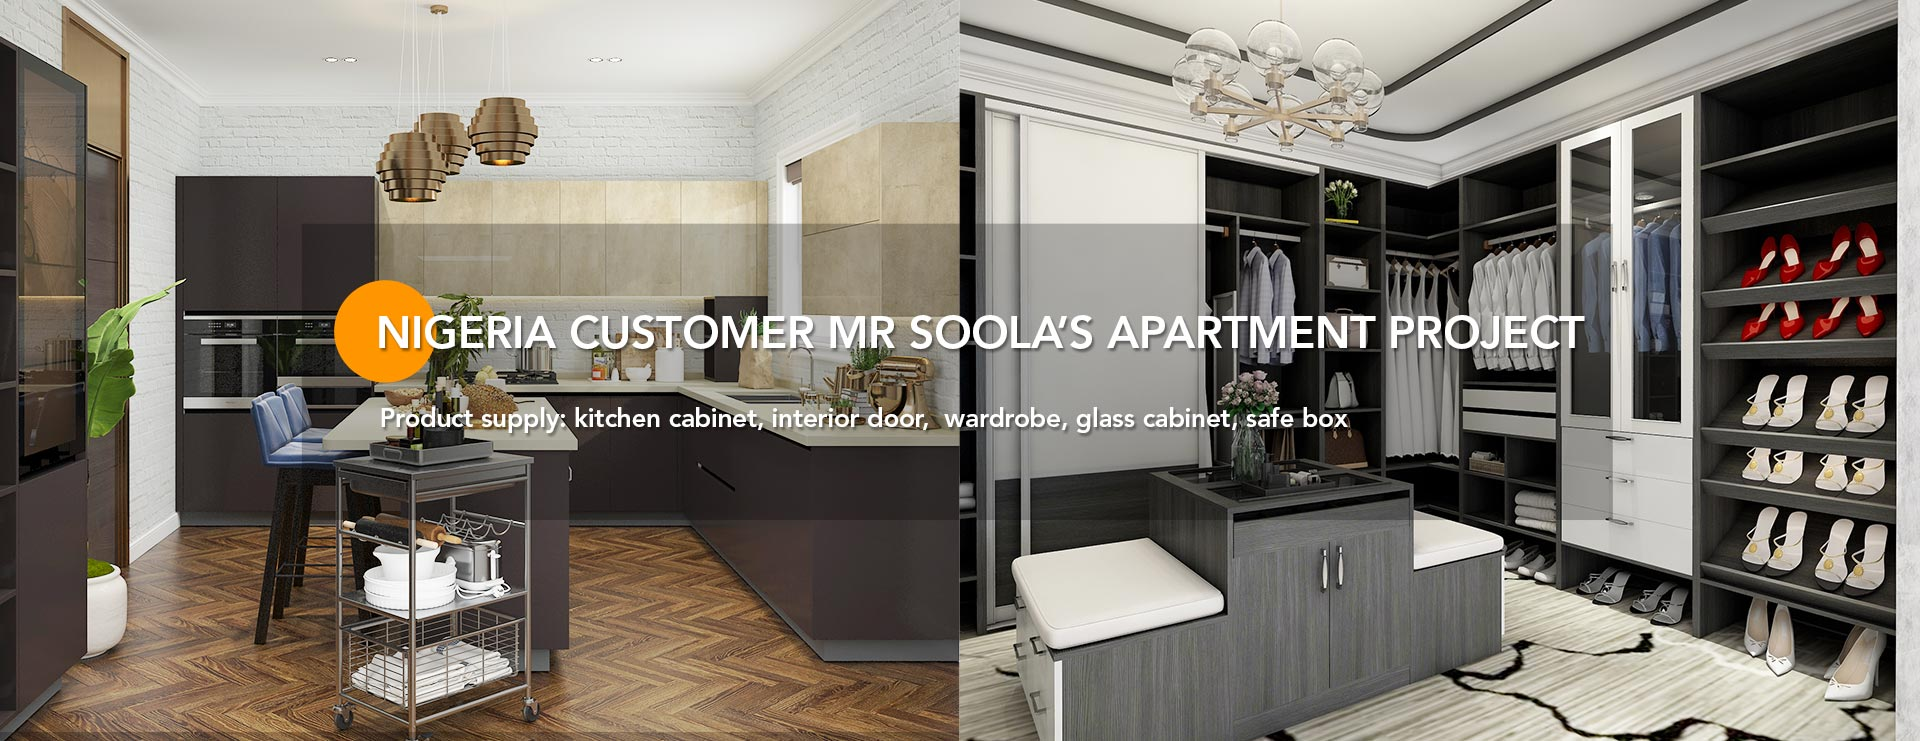 nigeria-customer-mr-soolas-apartment-project-01